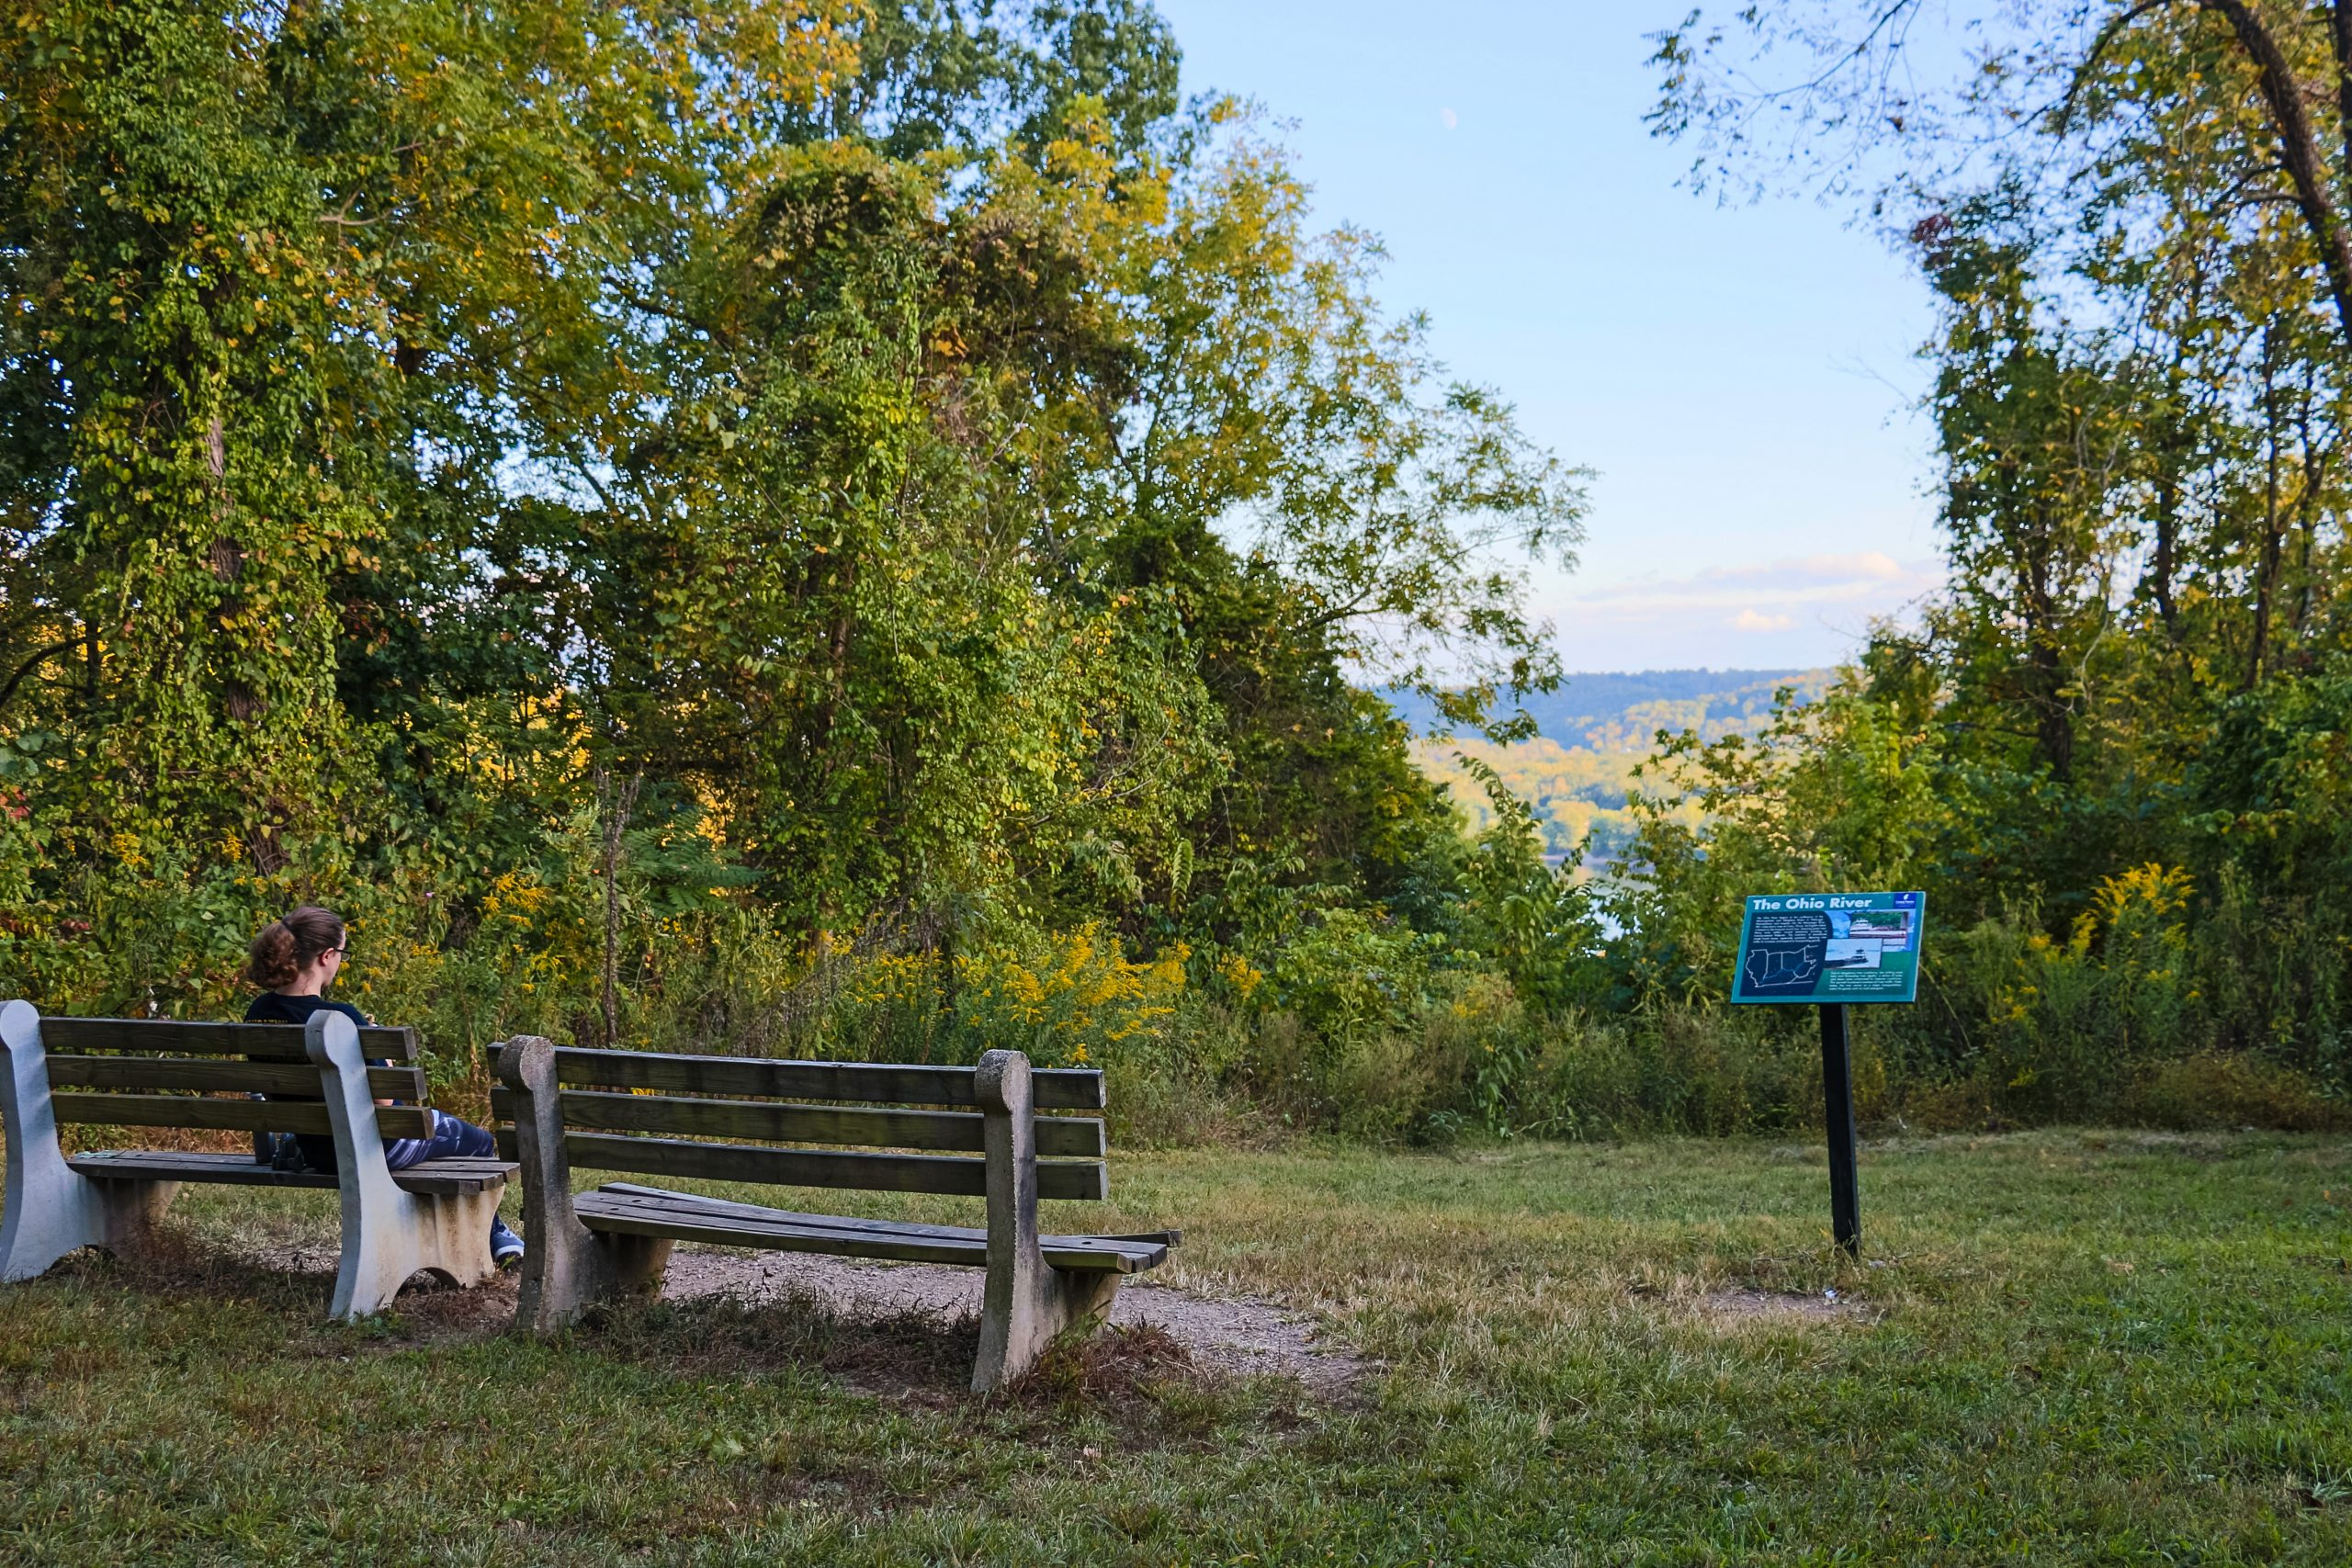 A woman sits on a bench overlooking the Ohio River at Withrow Nature Preserve.